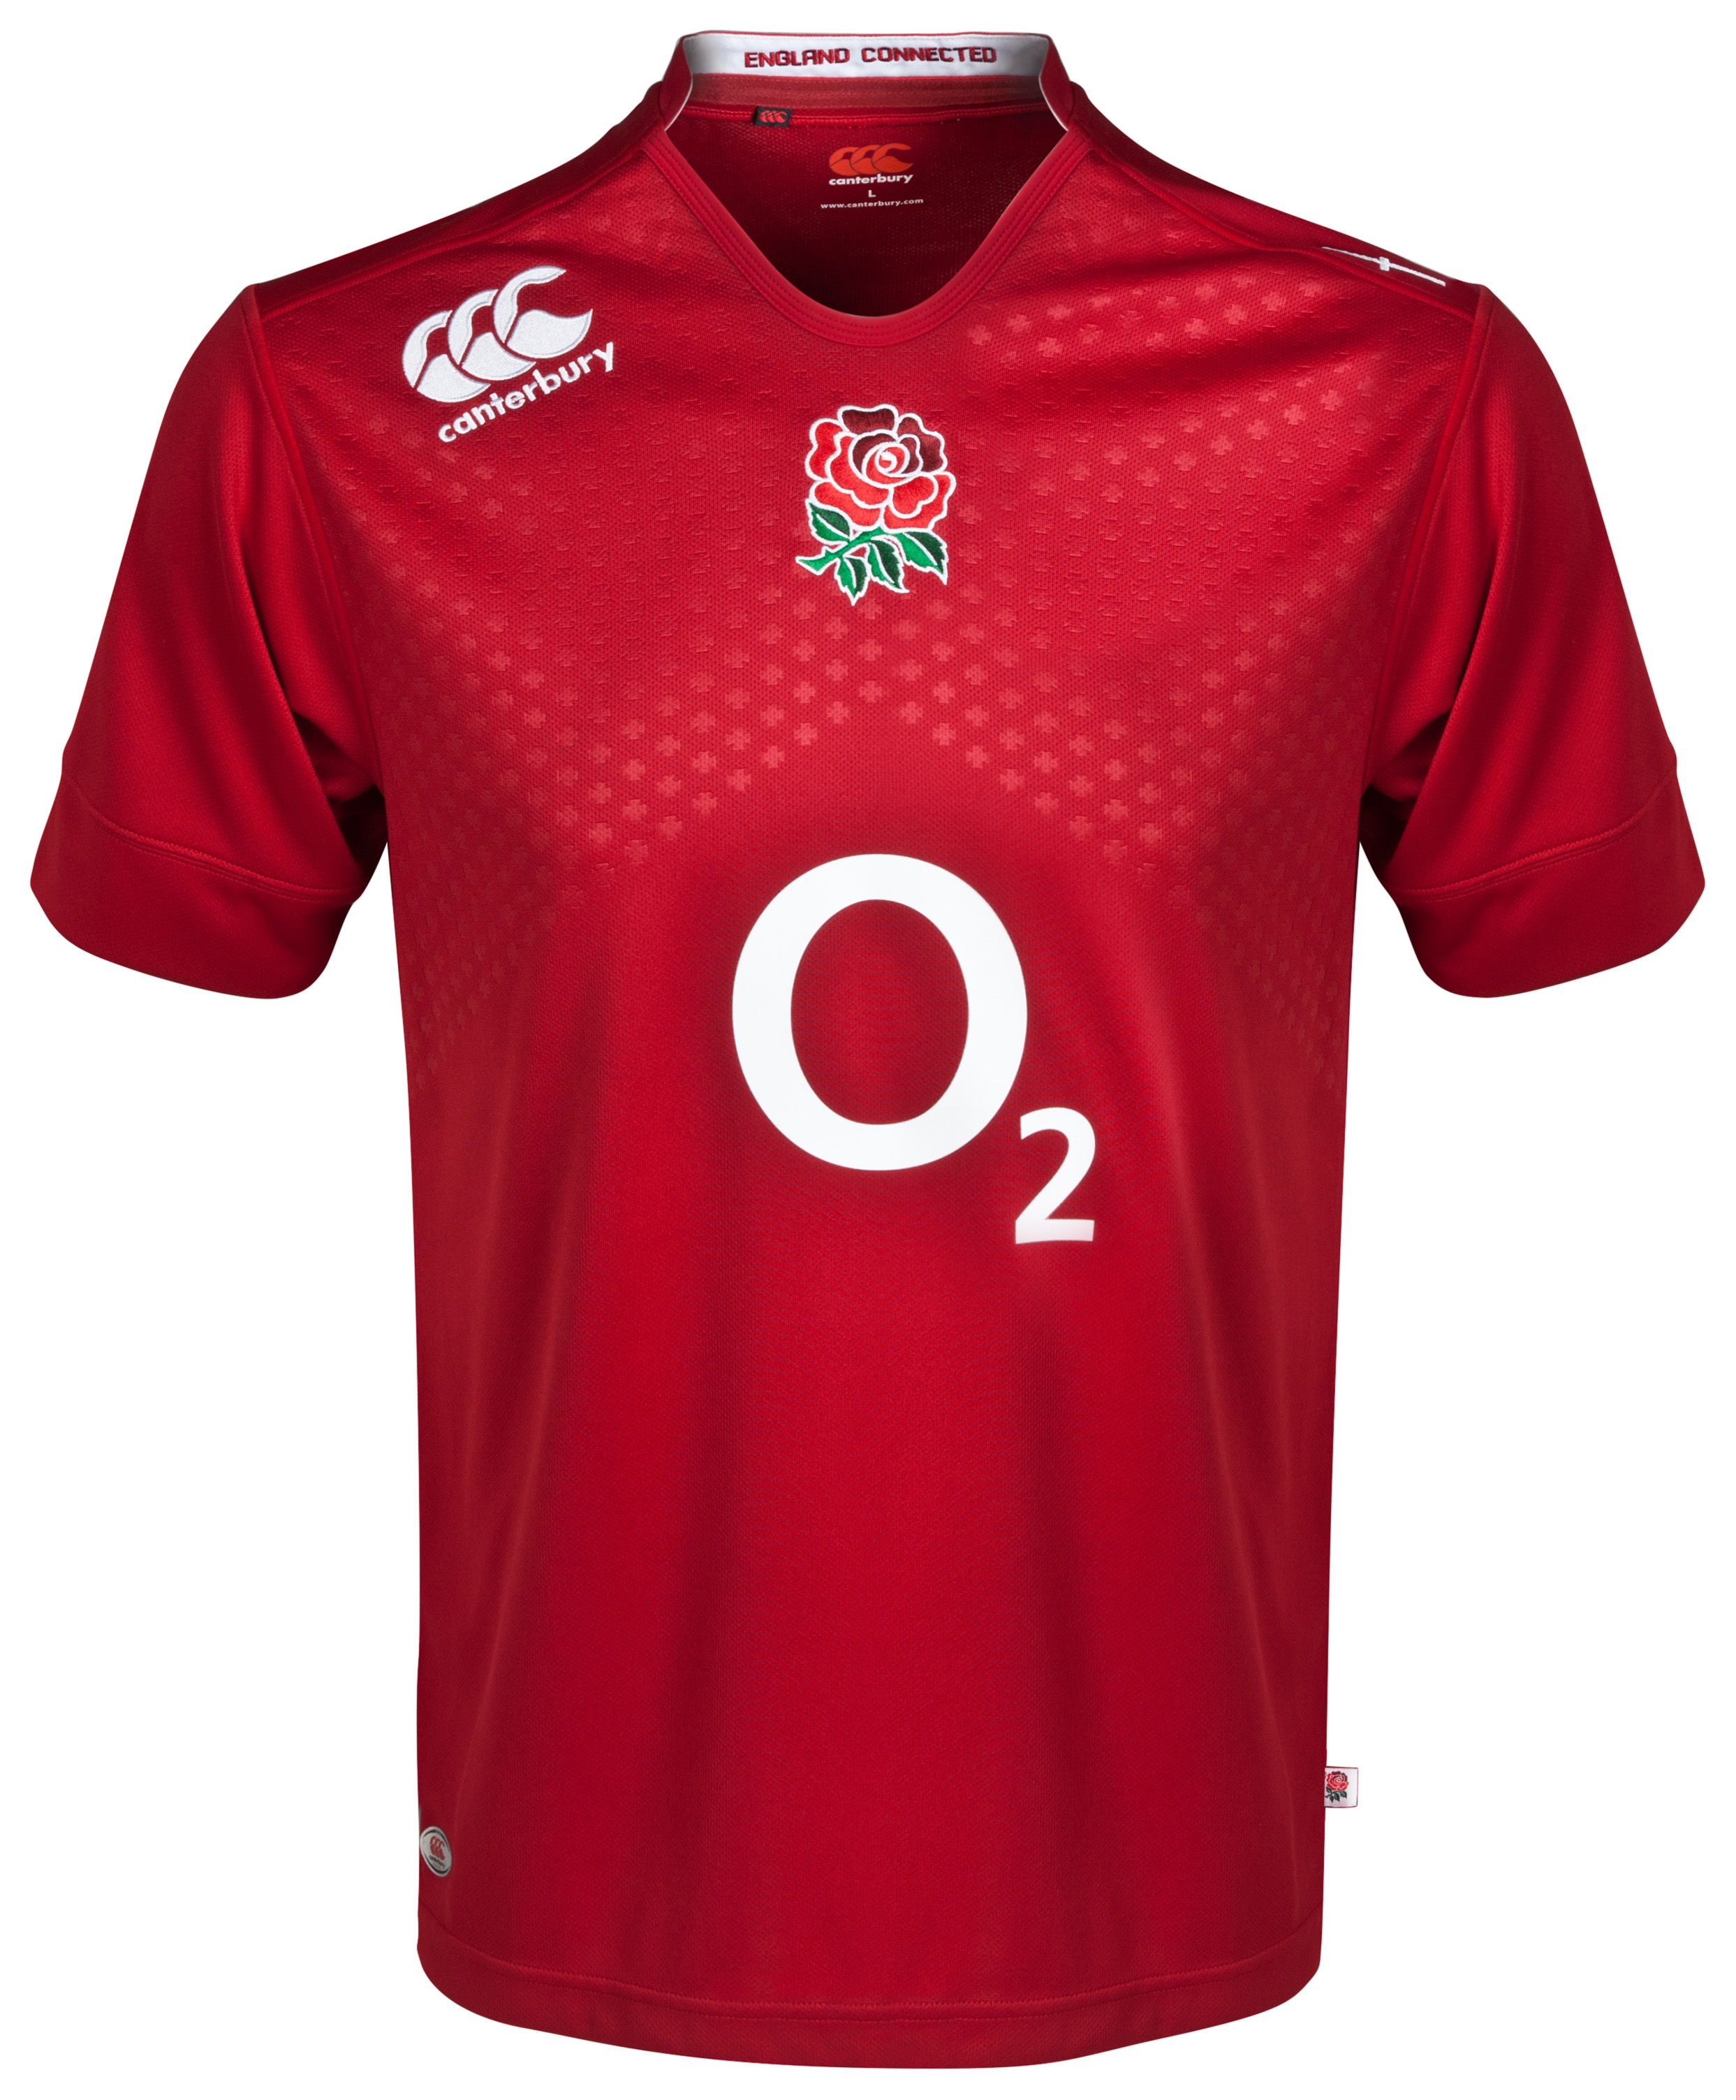 England Alternate Pro Short Sleeve Rugby Shirt 2014/15 Red